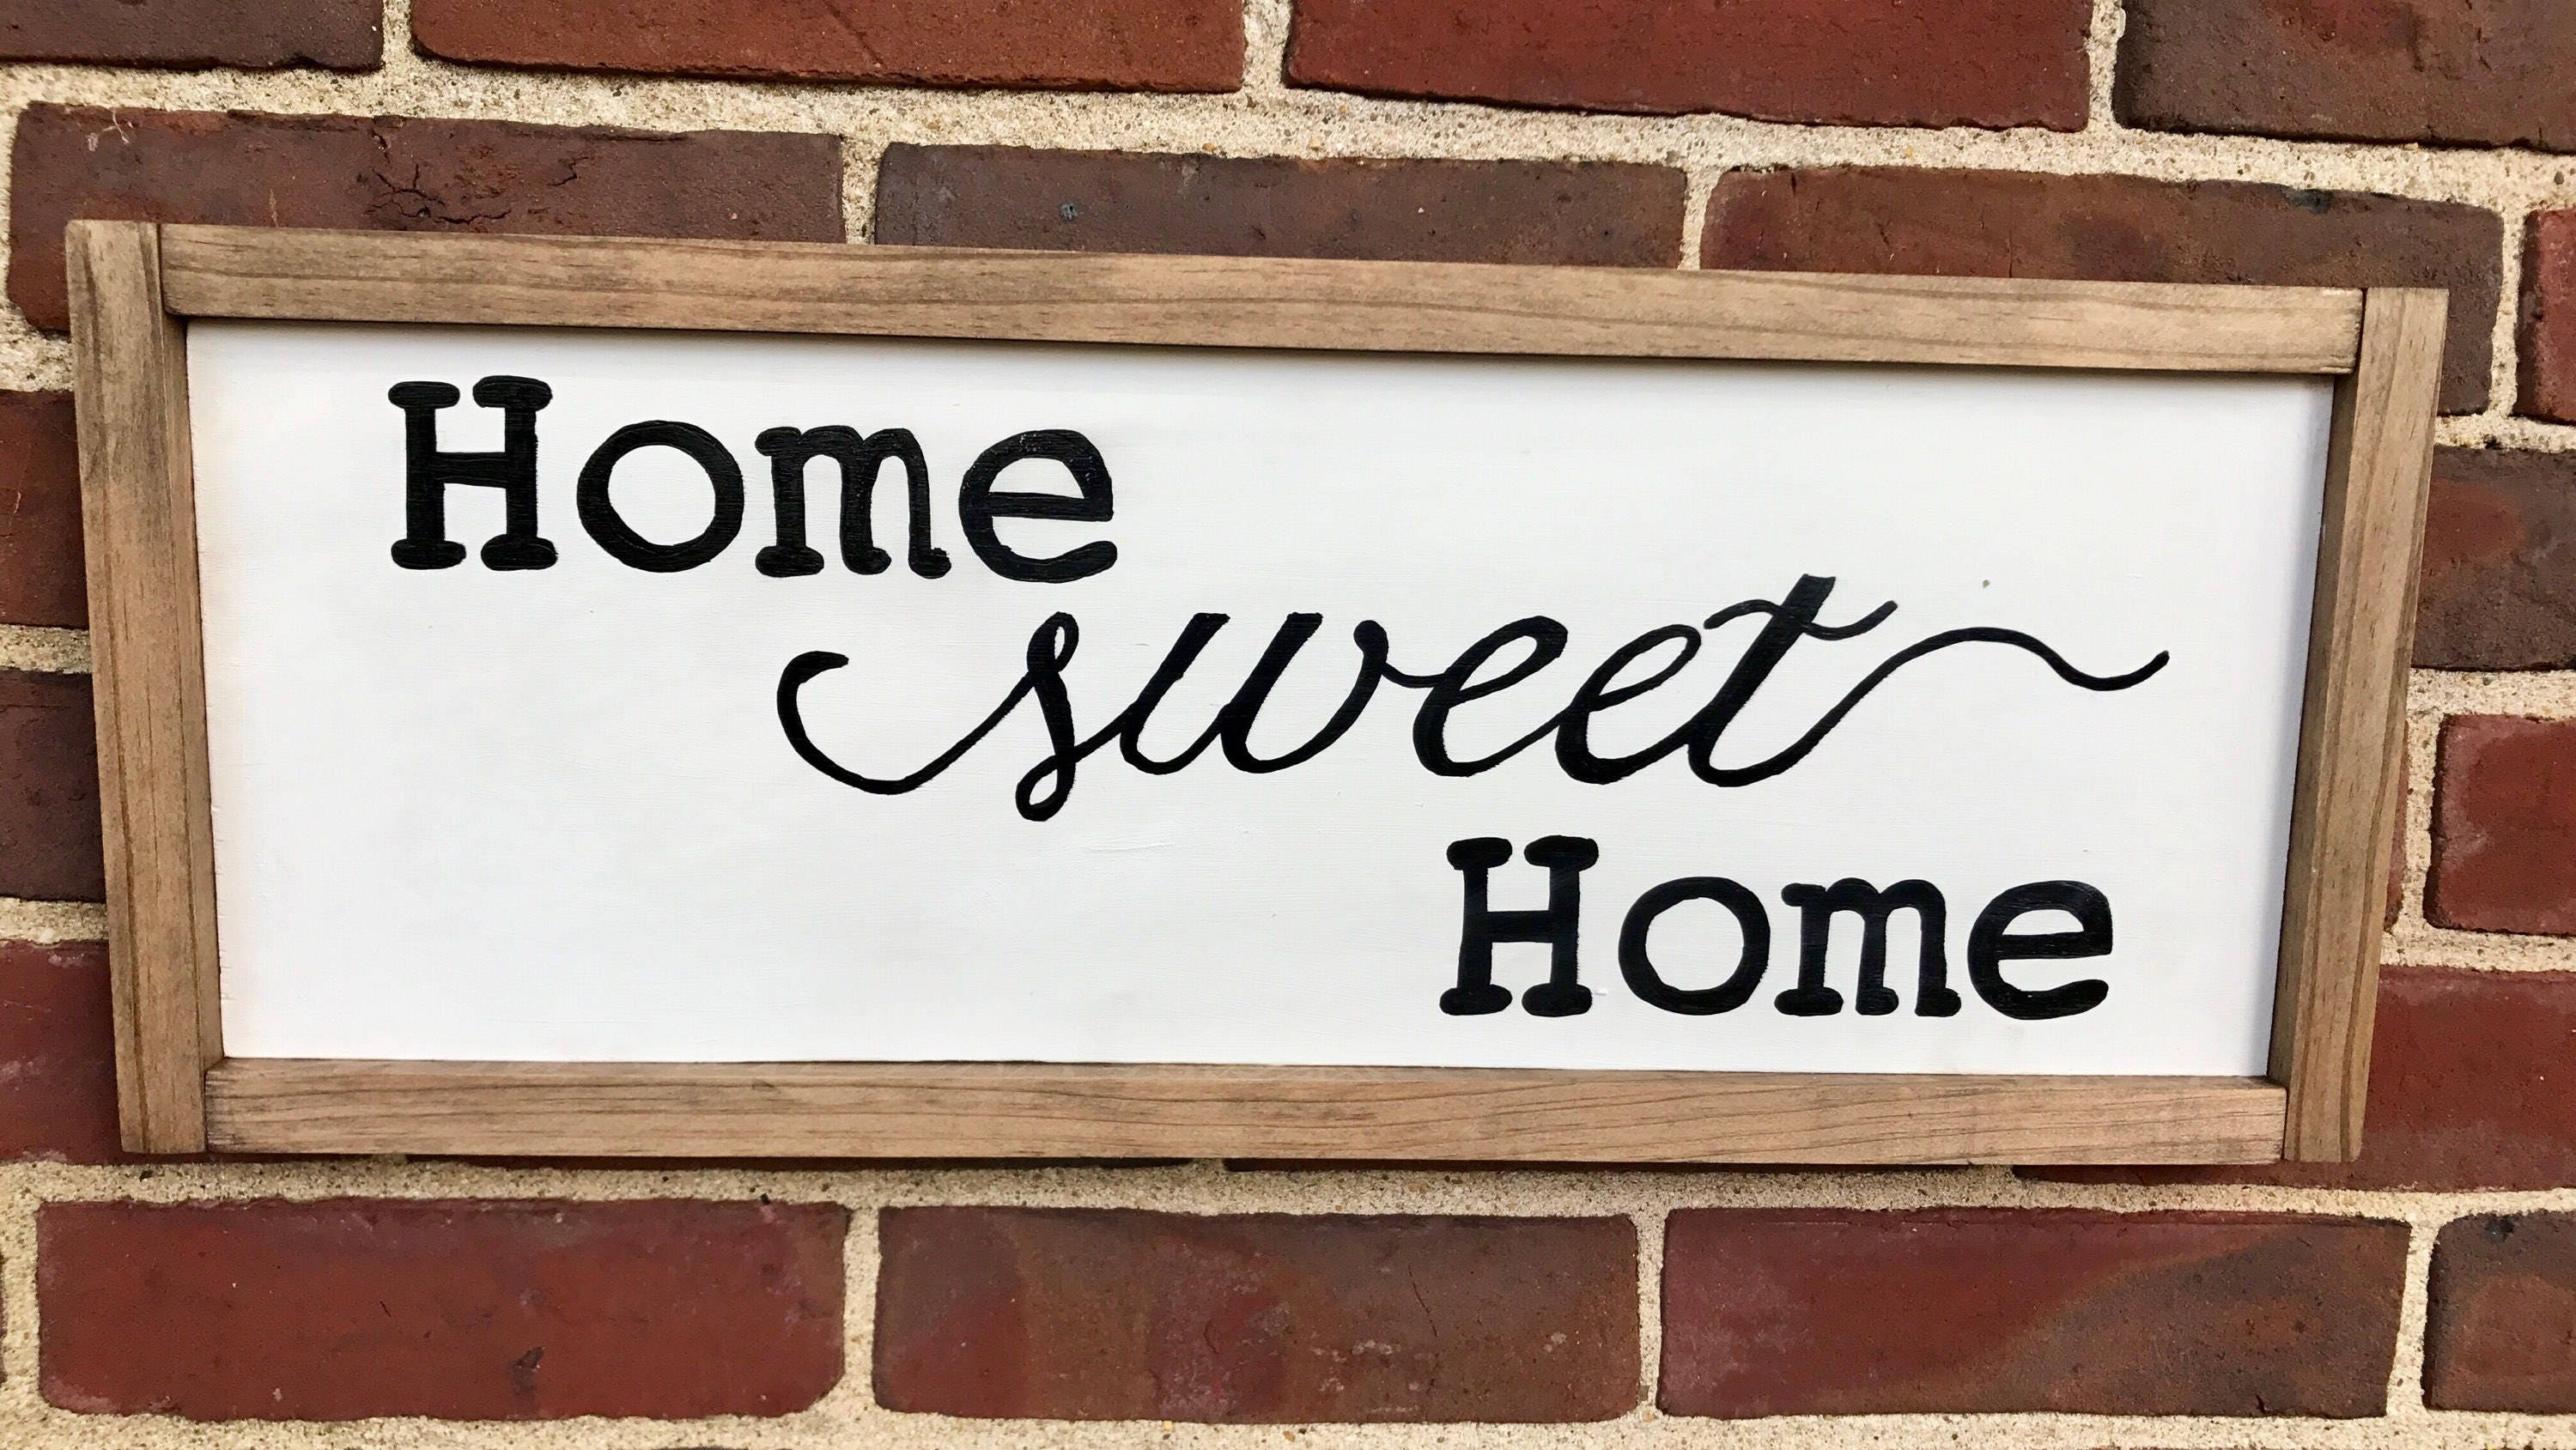 Home sweet home sign home sweet home rustic sign farmhouse ...